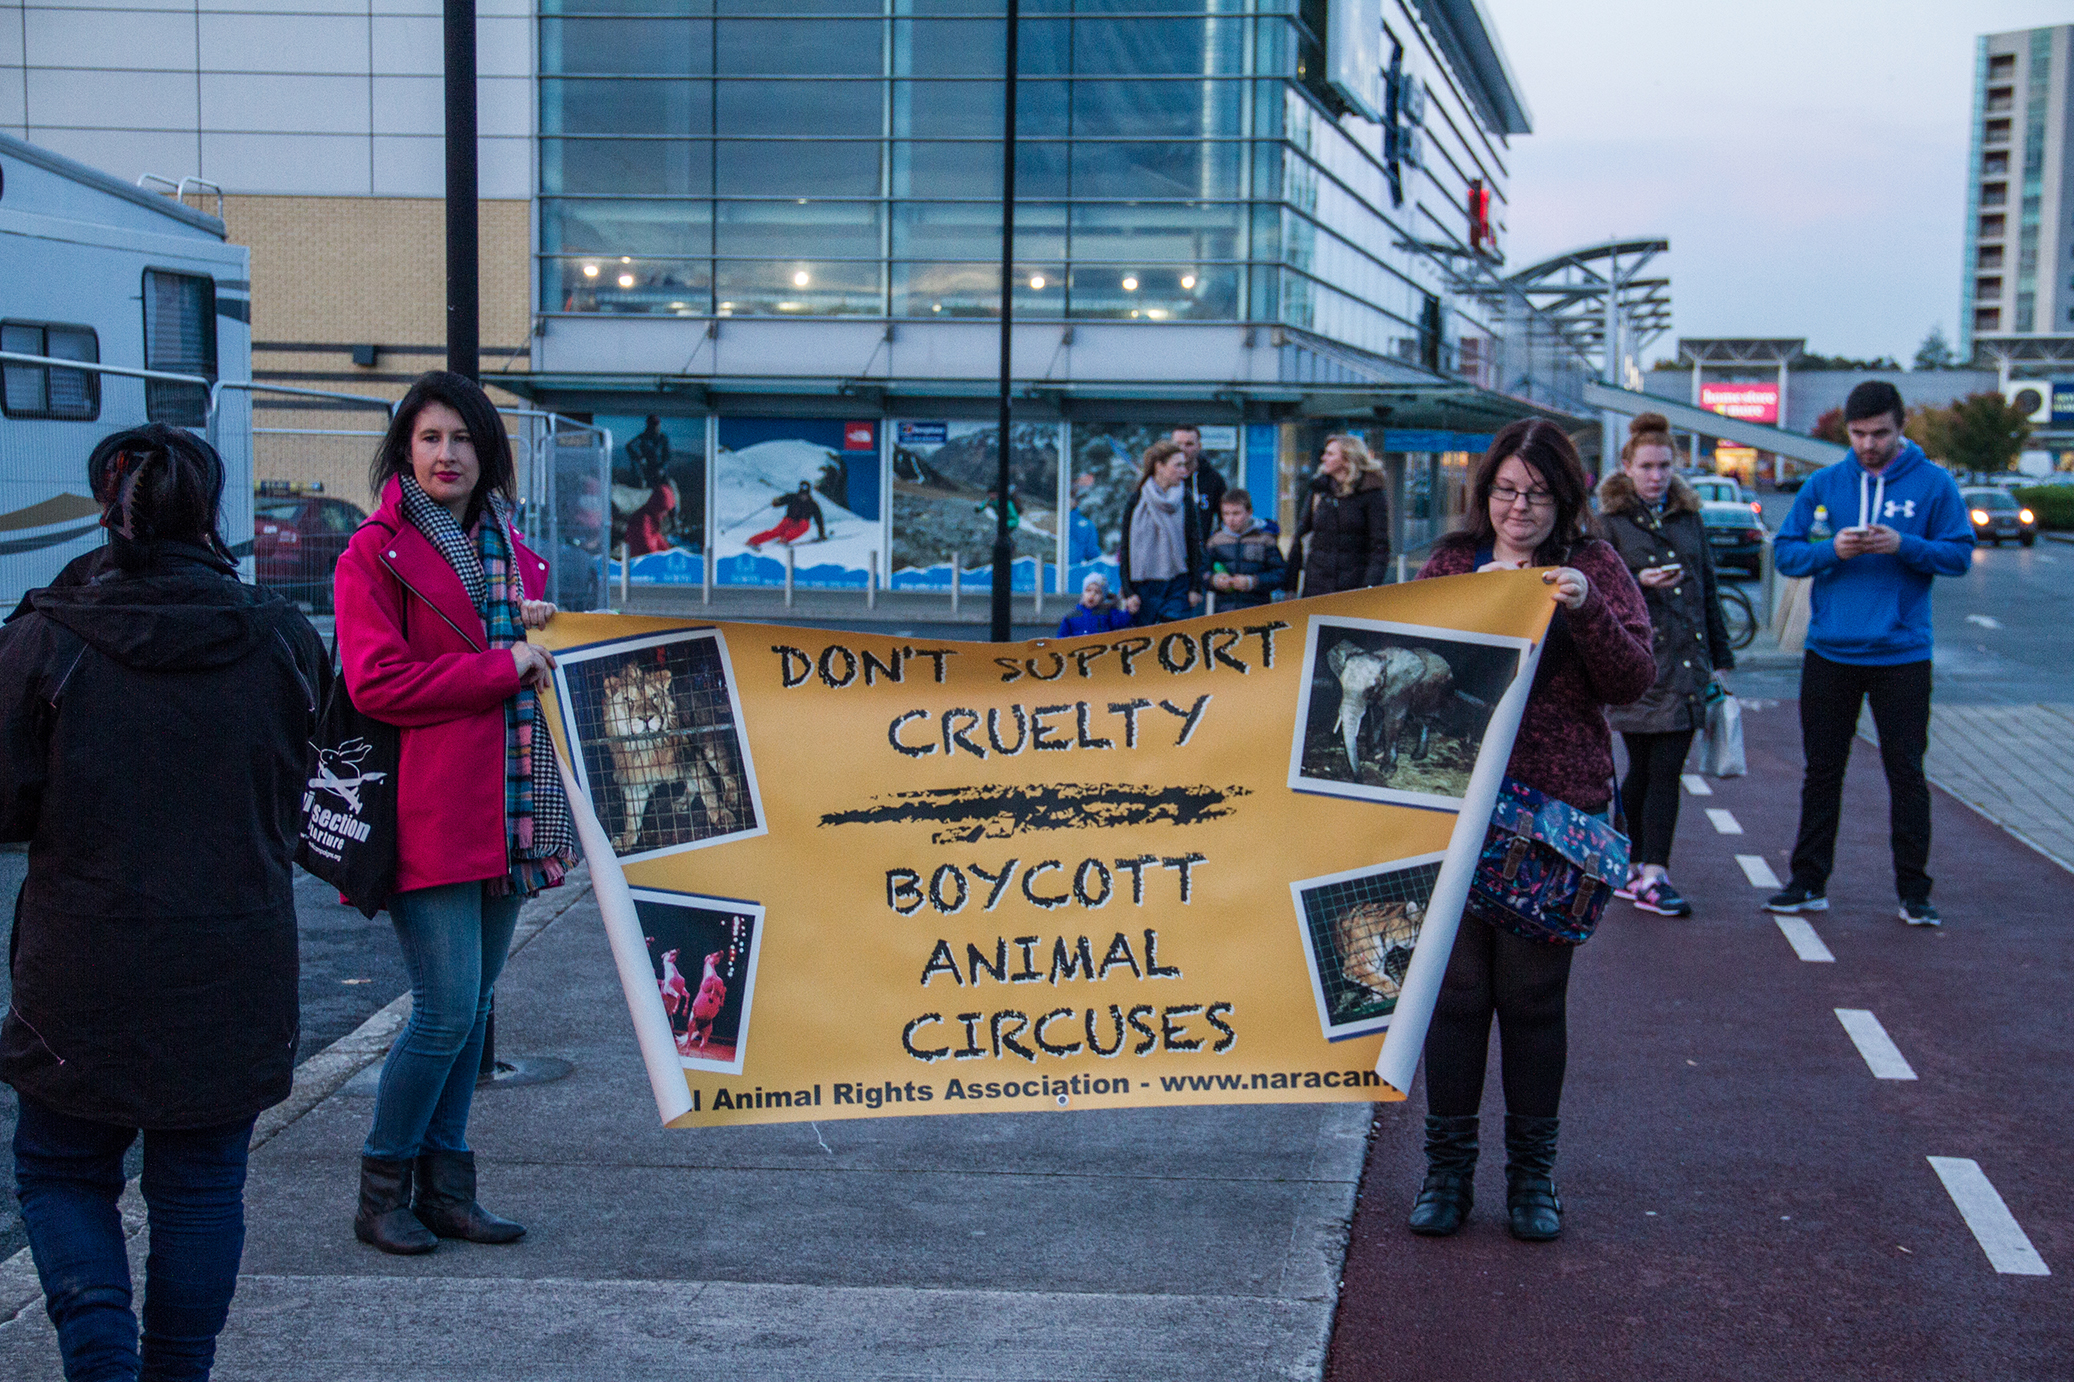 Animal rights protestors outside the circus